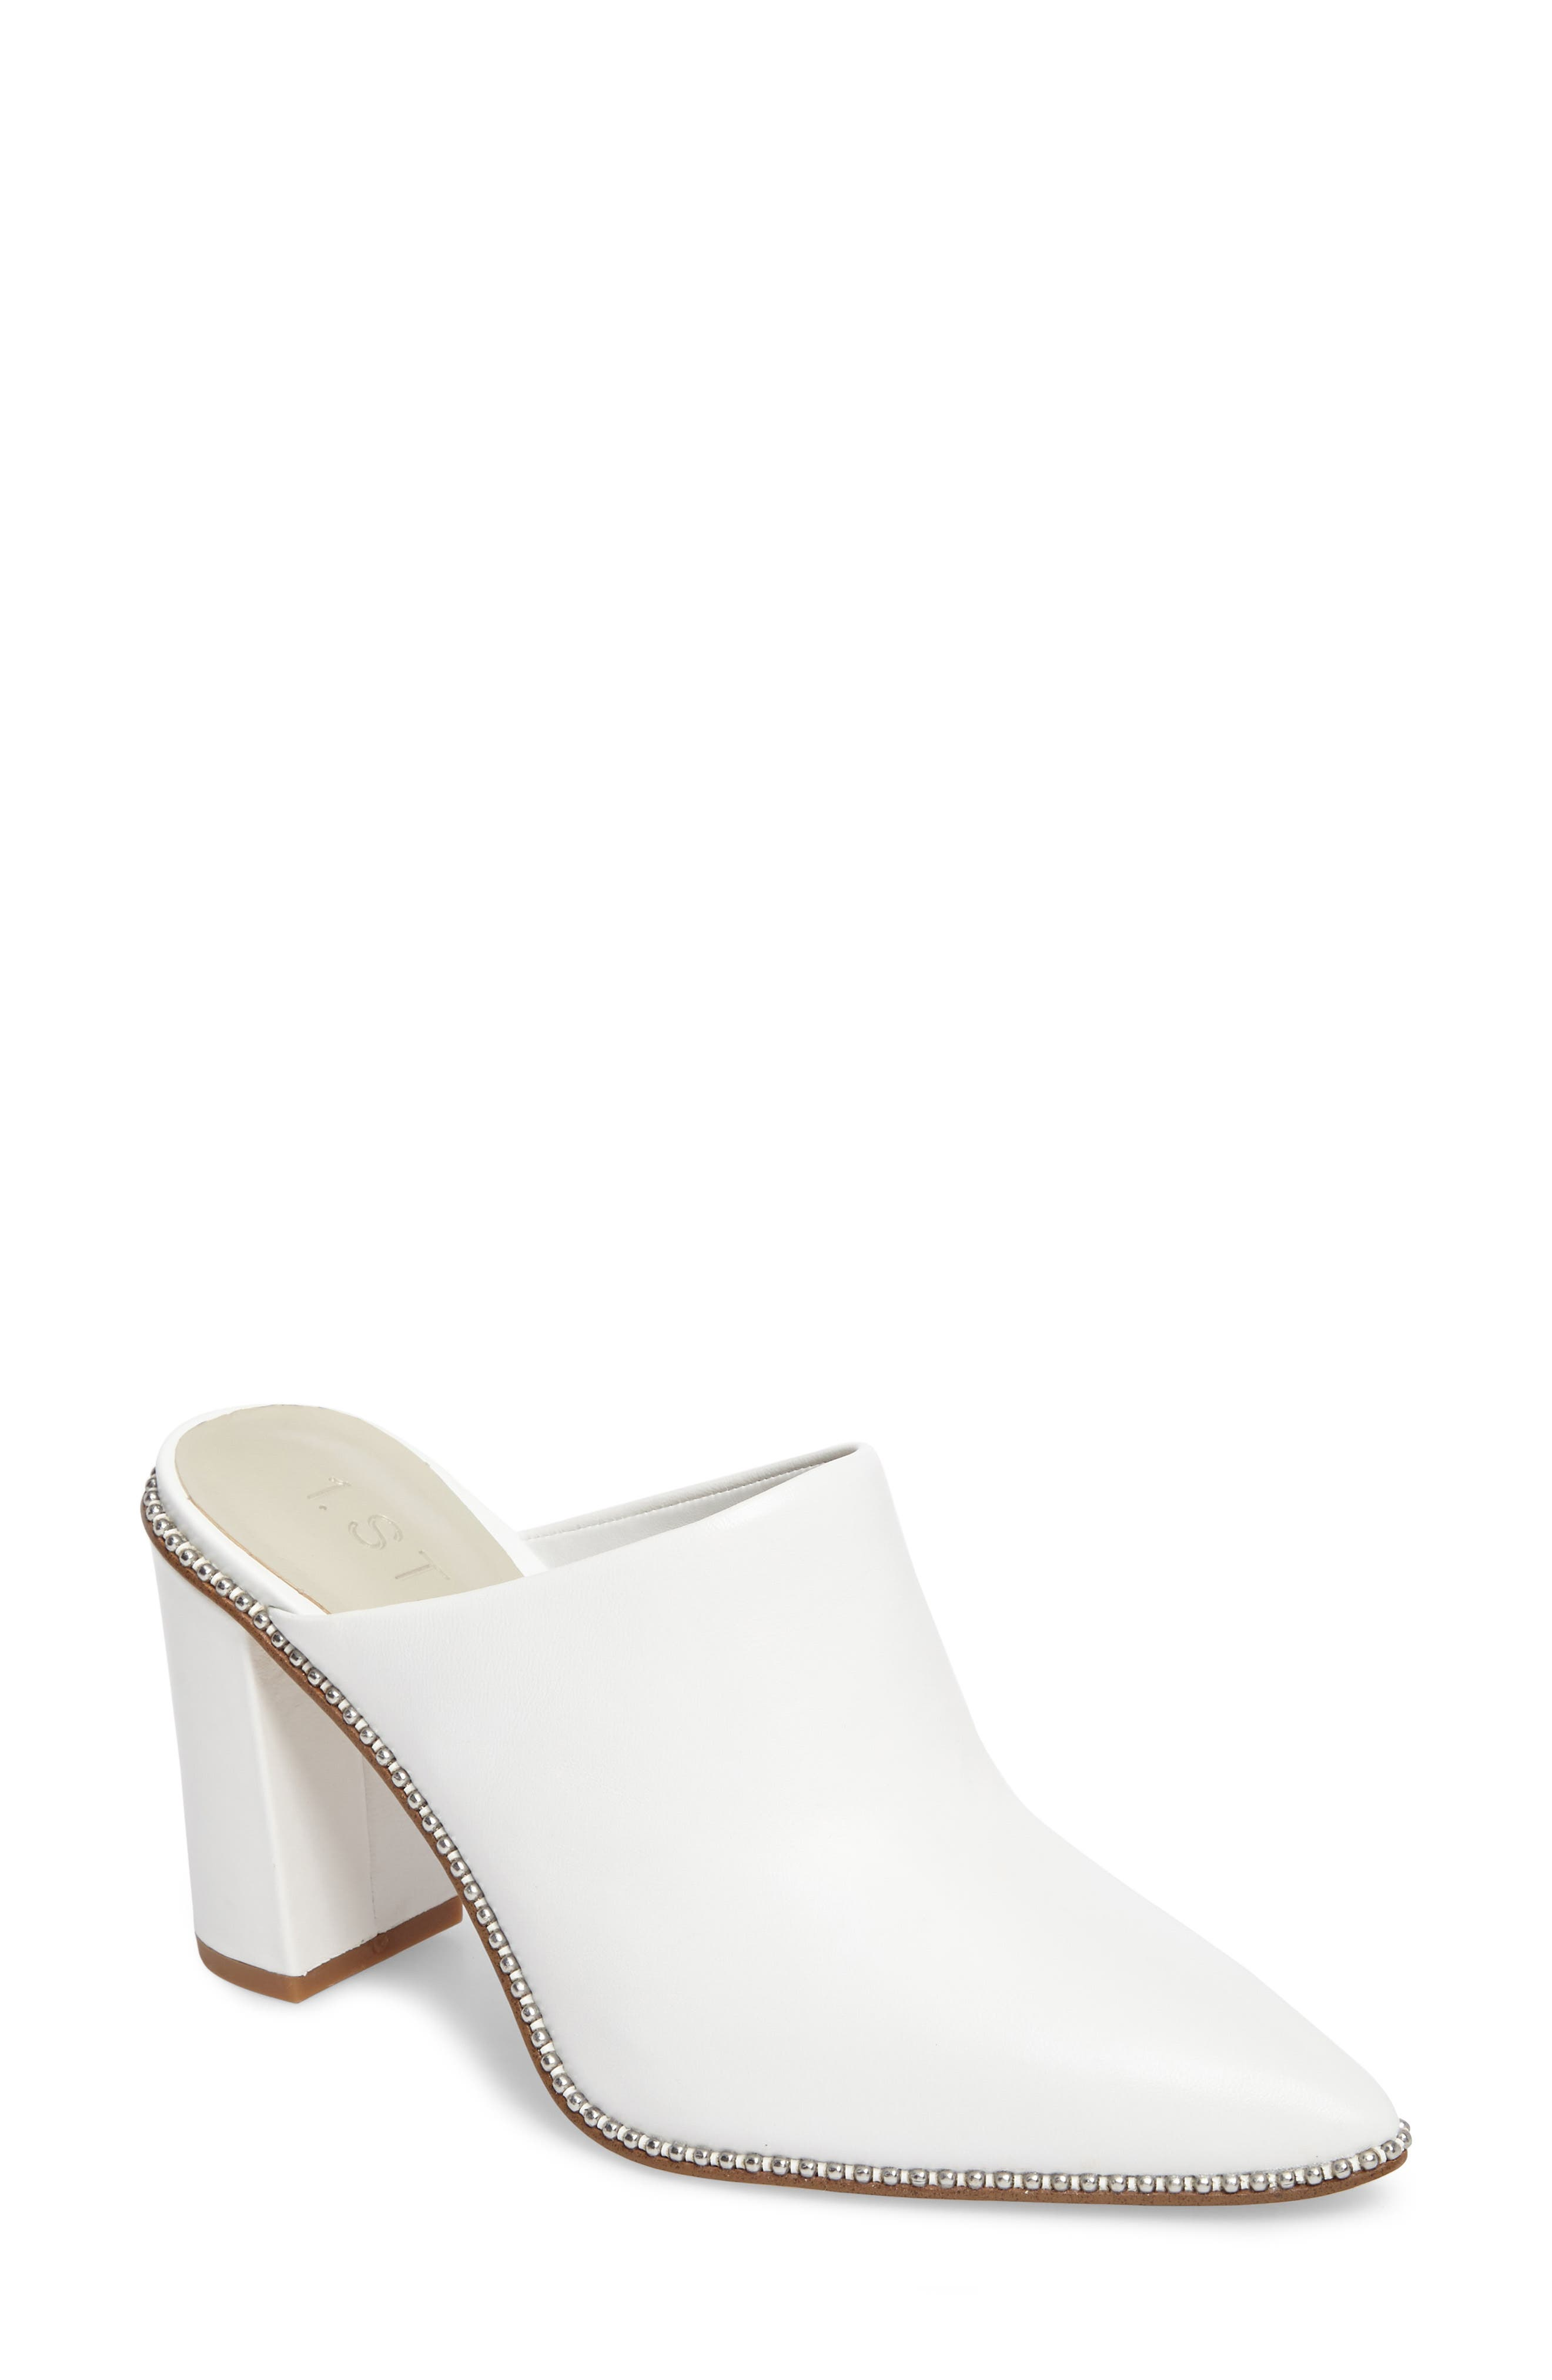 Main Image - 1.STATE Relle Mule (Women)